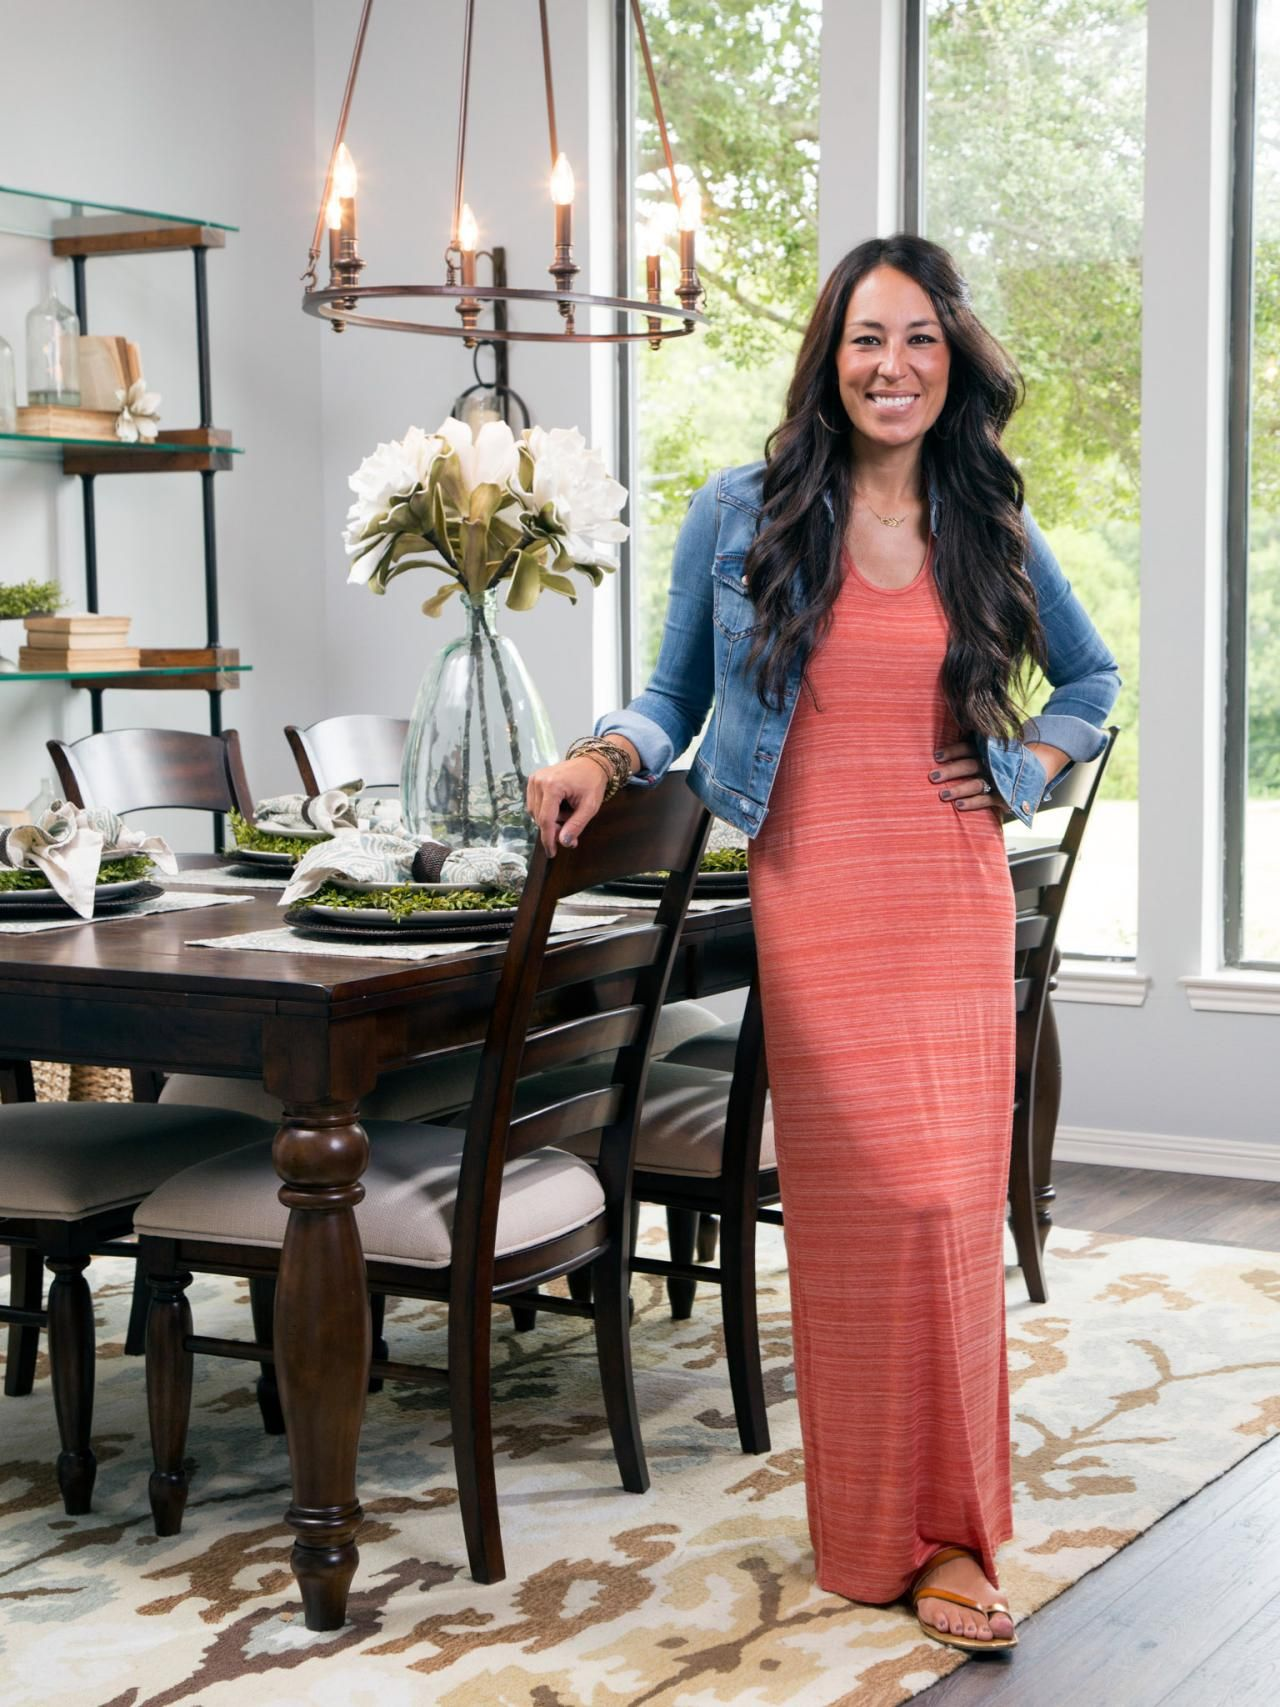 joanna gaines bio. Black Bedroom Furniture Sets. Home Design Ideas